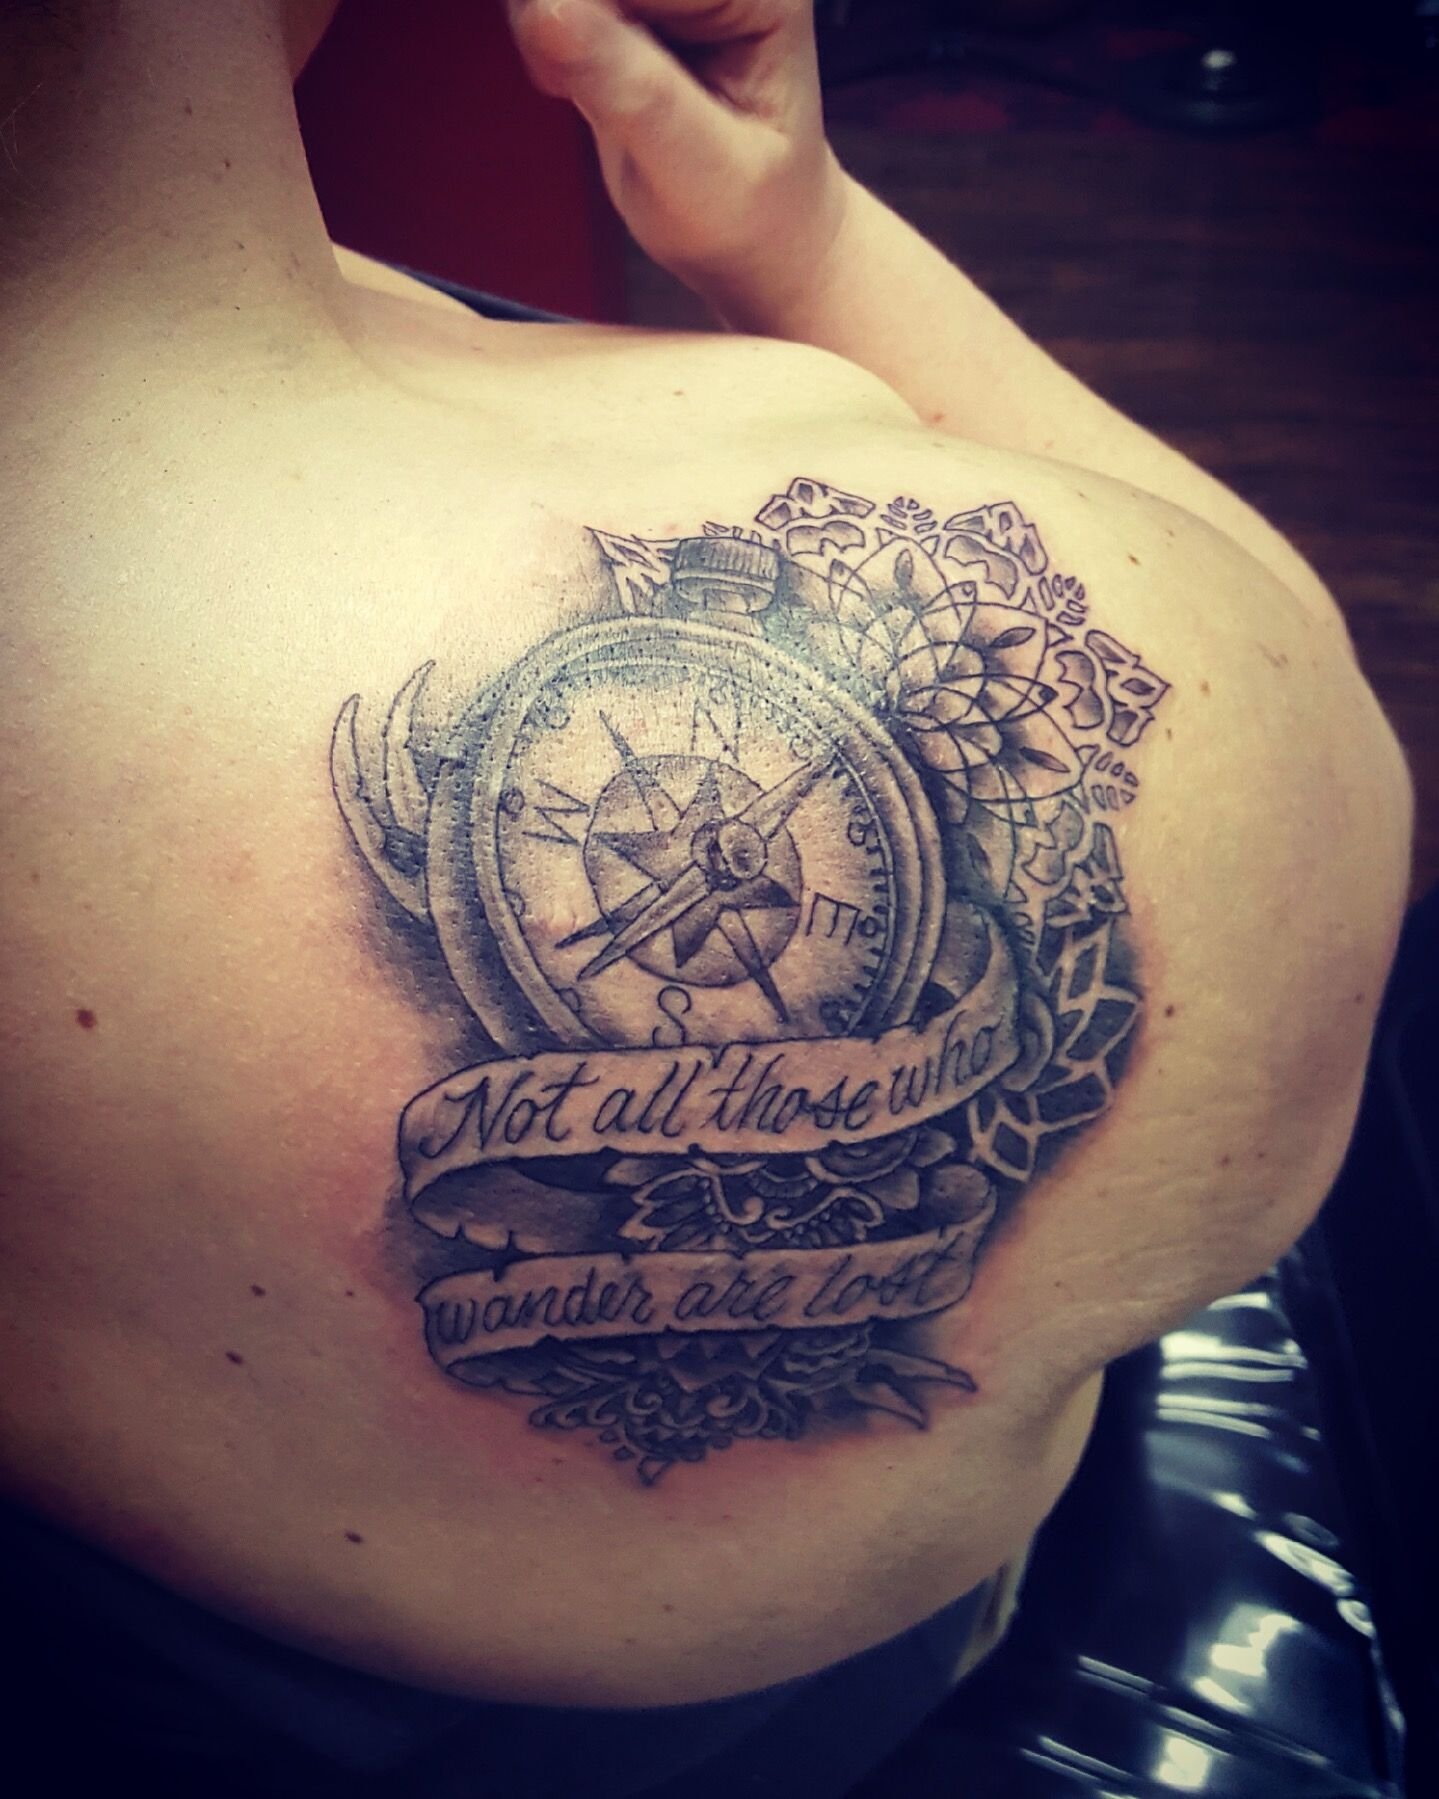 Not All Those Who Wander Are Lost Tattoo Compass Not All Those Who Wander Are Lost Tattoo Mandala Compass Epic Tattoos Ft Worth Tattoos For Guys Rose Tattoos For Men Sleeve Tattoos For Women